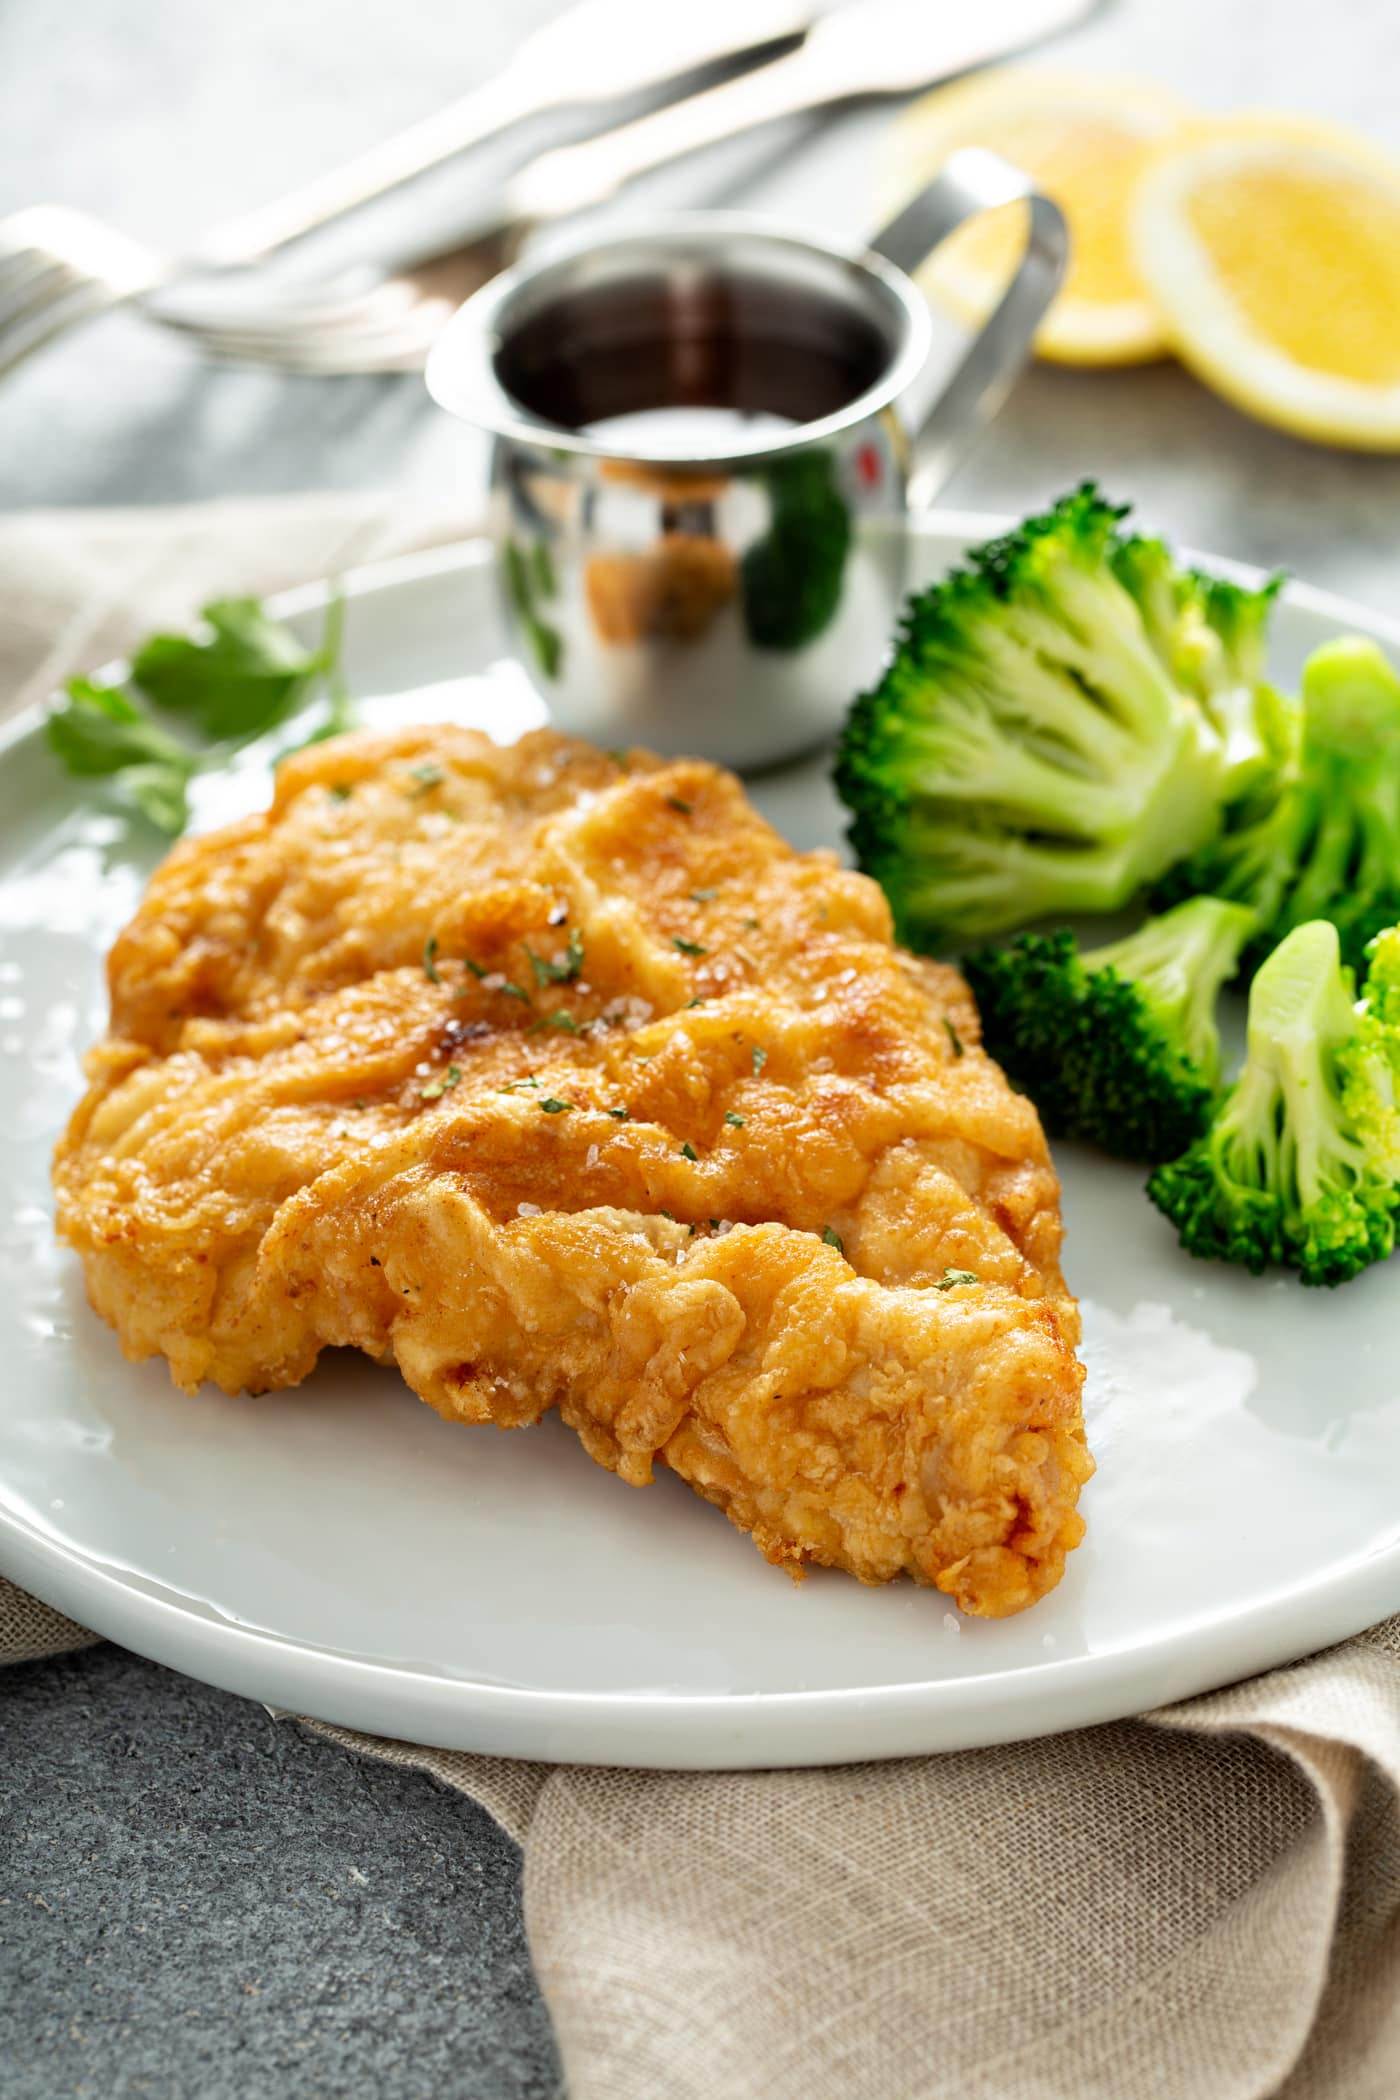 A piece of chicken fried to a perfect golden brown. There is a silver pitcher of sauce and steamed broccoli next to the chicken on a white dinner plate.